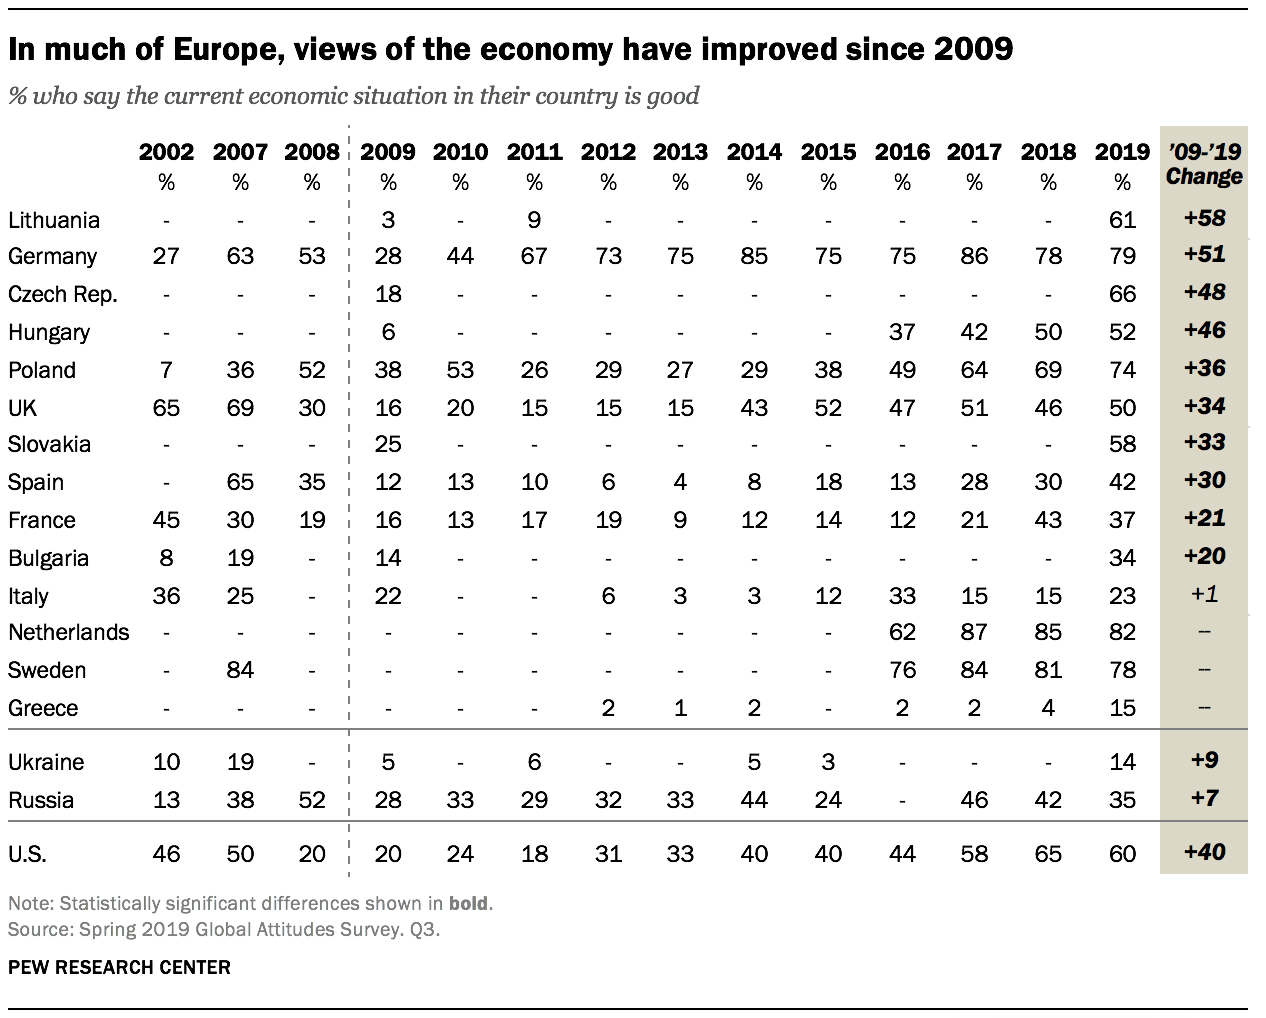 In much of Europe, views of the economy have improved since 2009